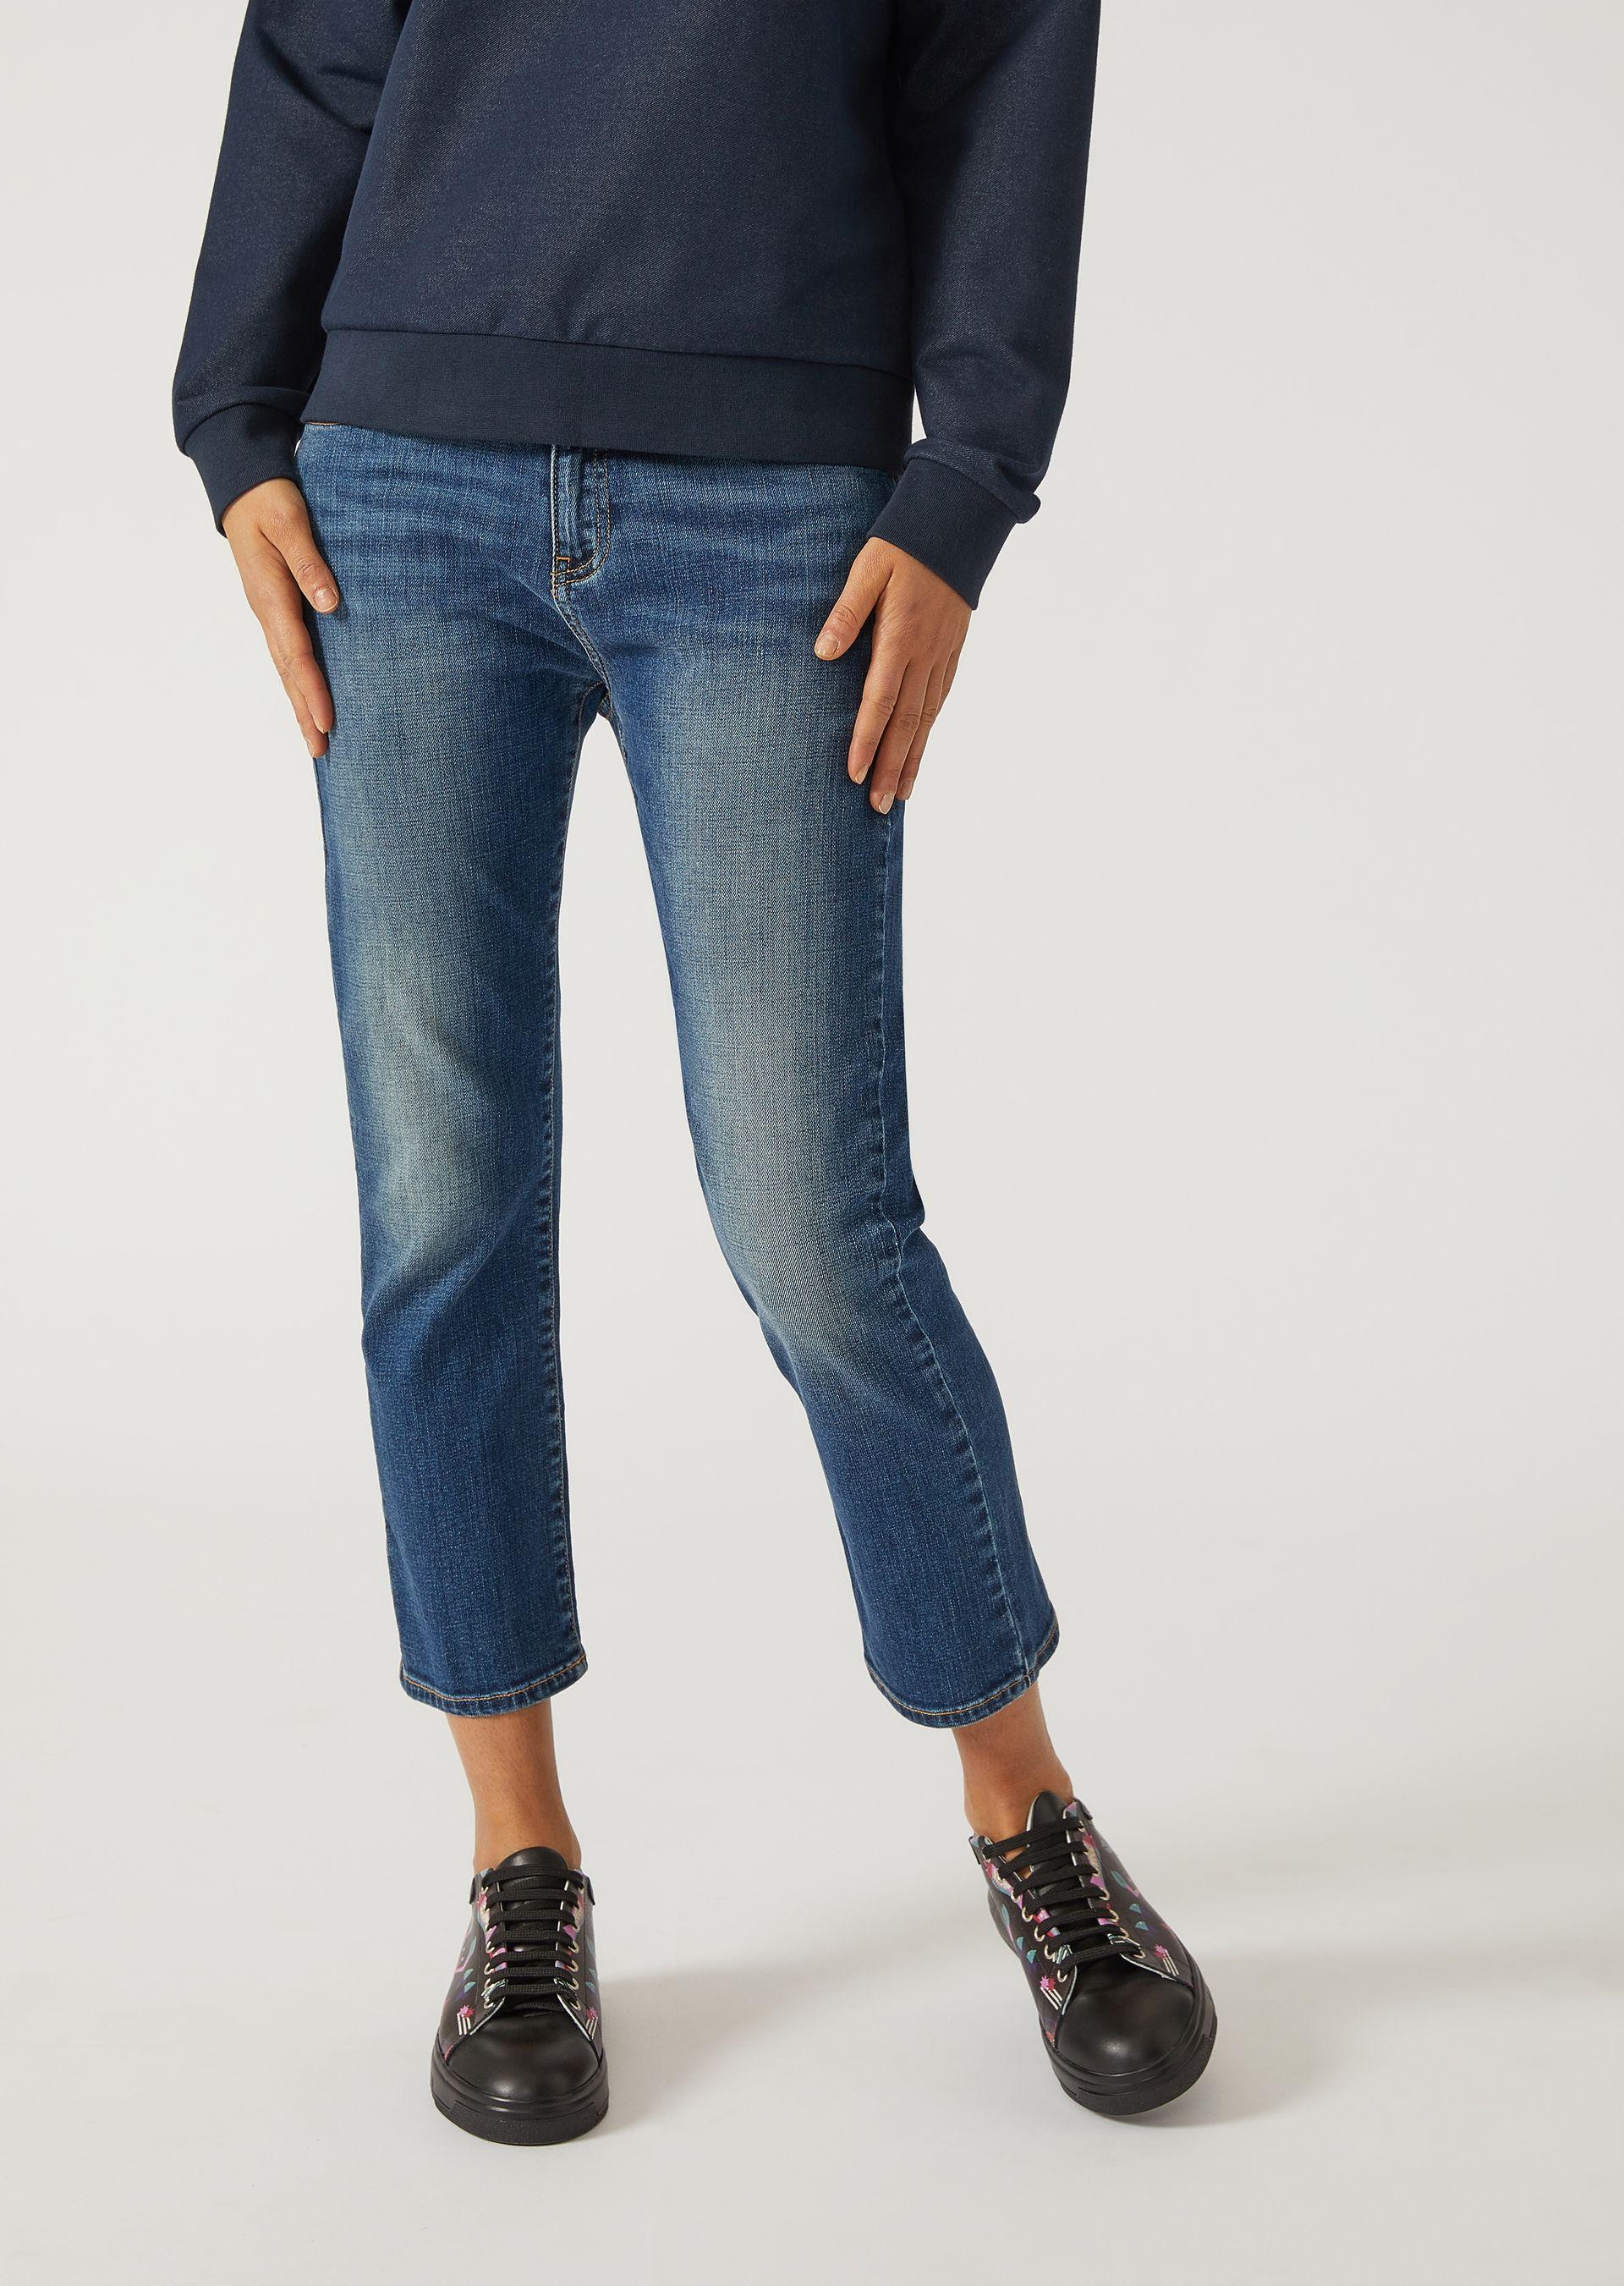 Emporio Armani Tapered Jeans - Item 42666770 In Blue